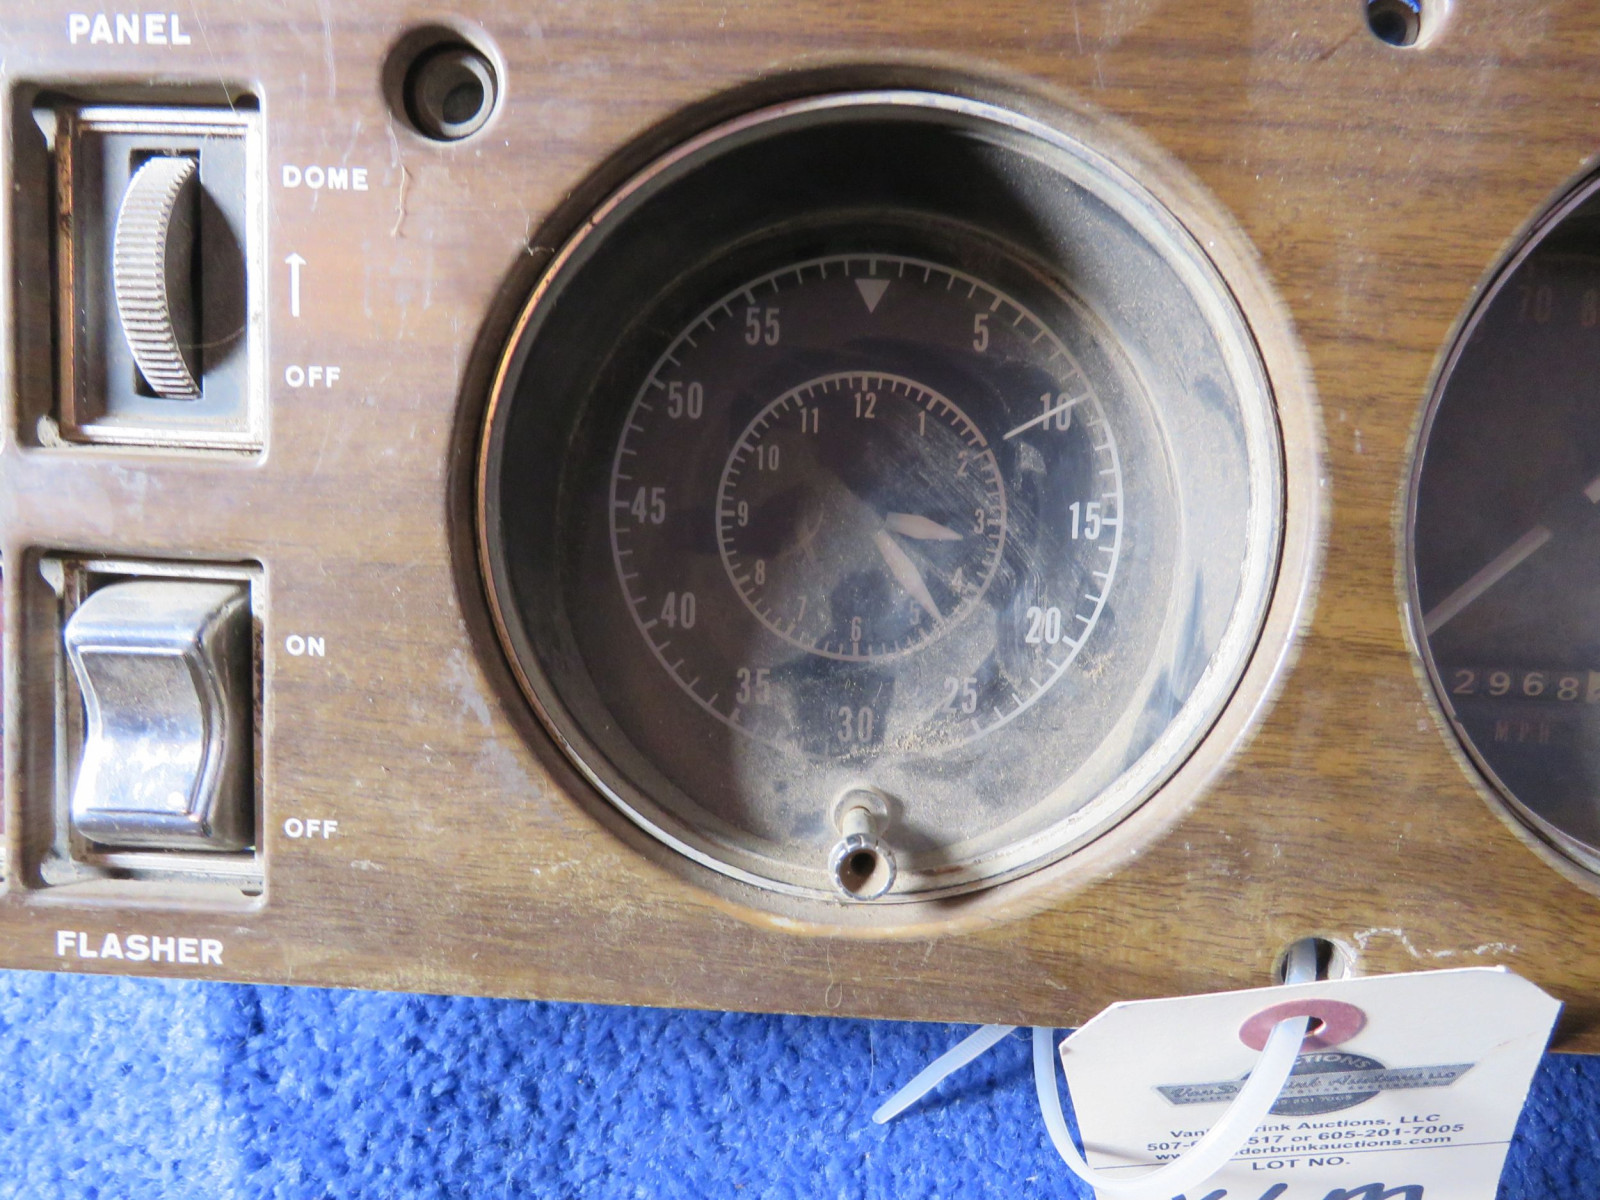 MOPAR B Body Ralley Dash Original with Tick Tach 150mph Speedometer - Image 2